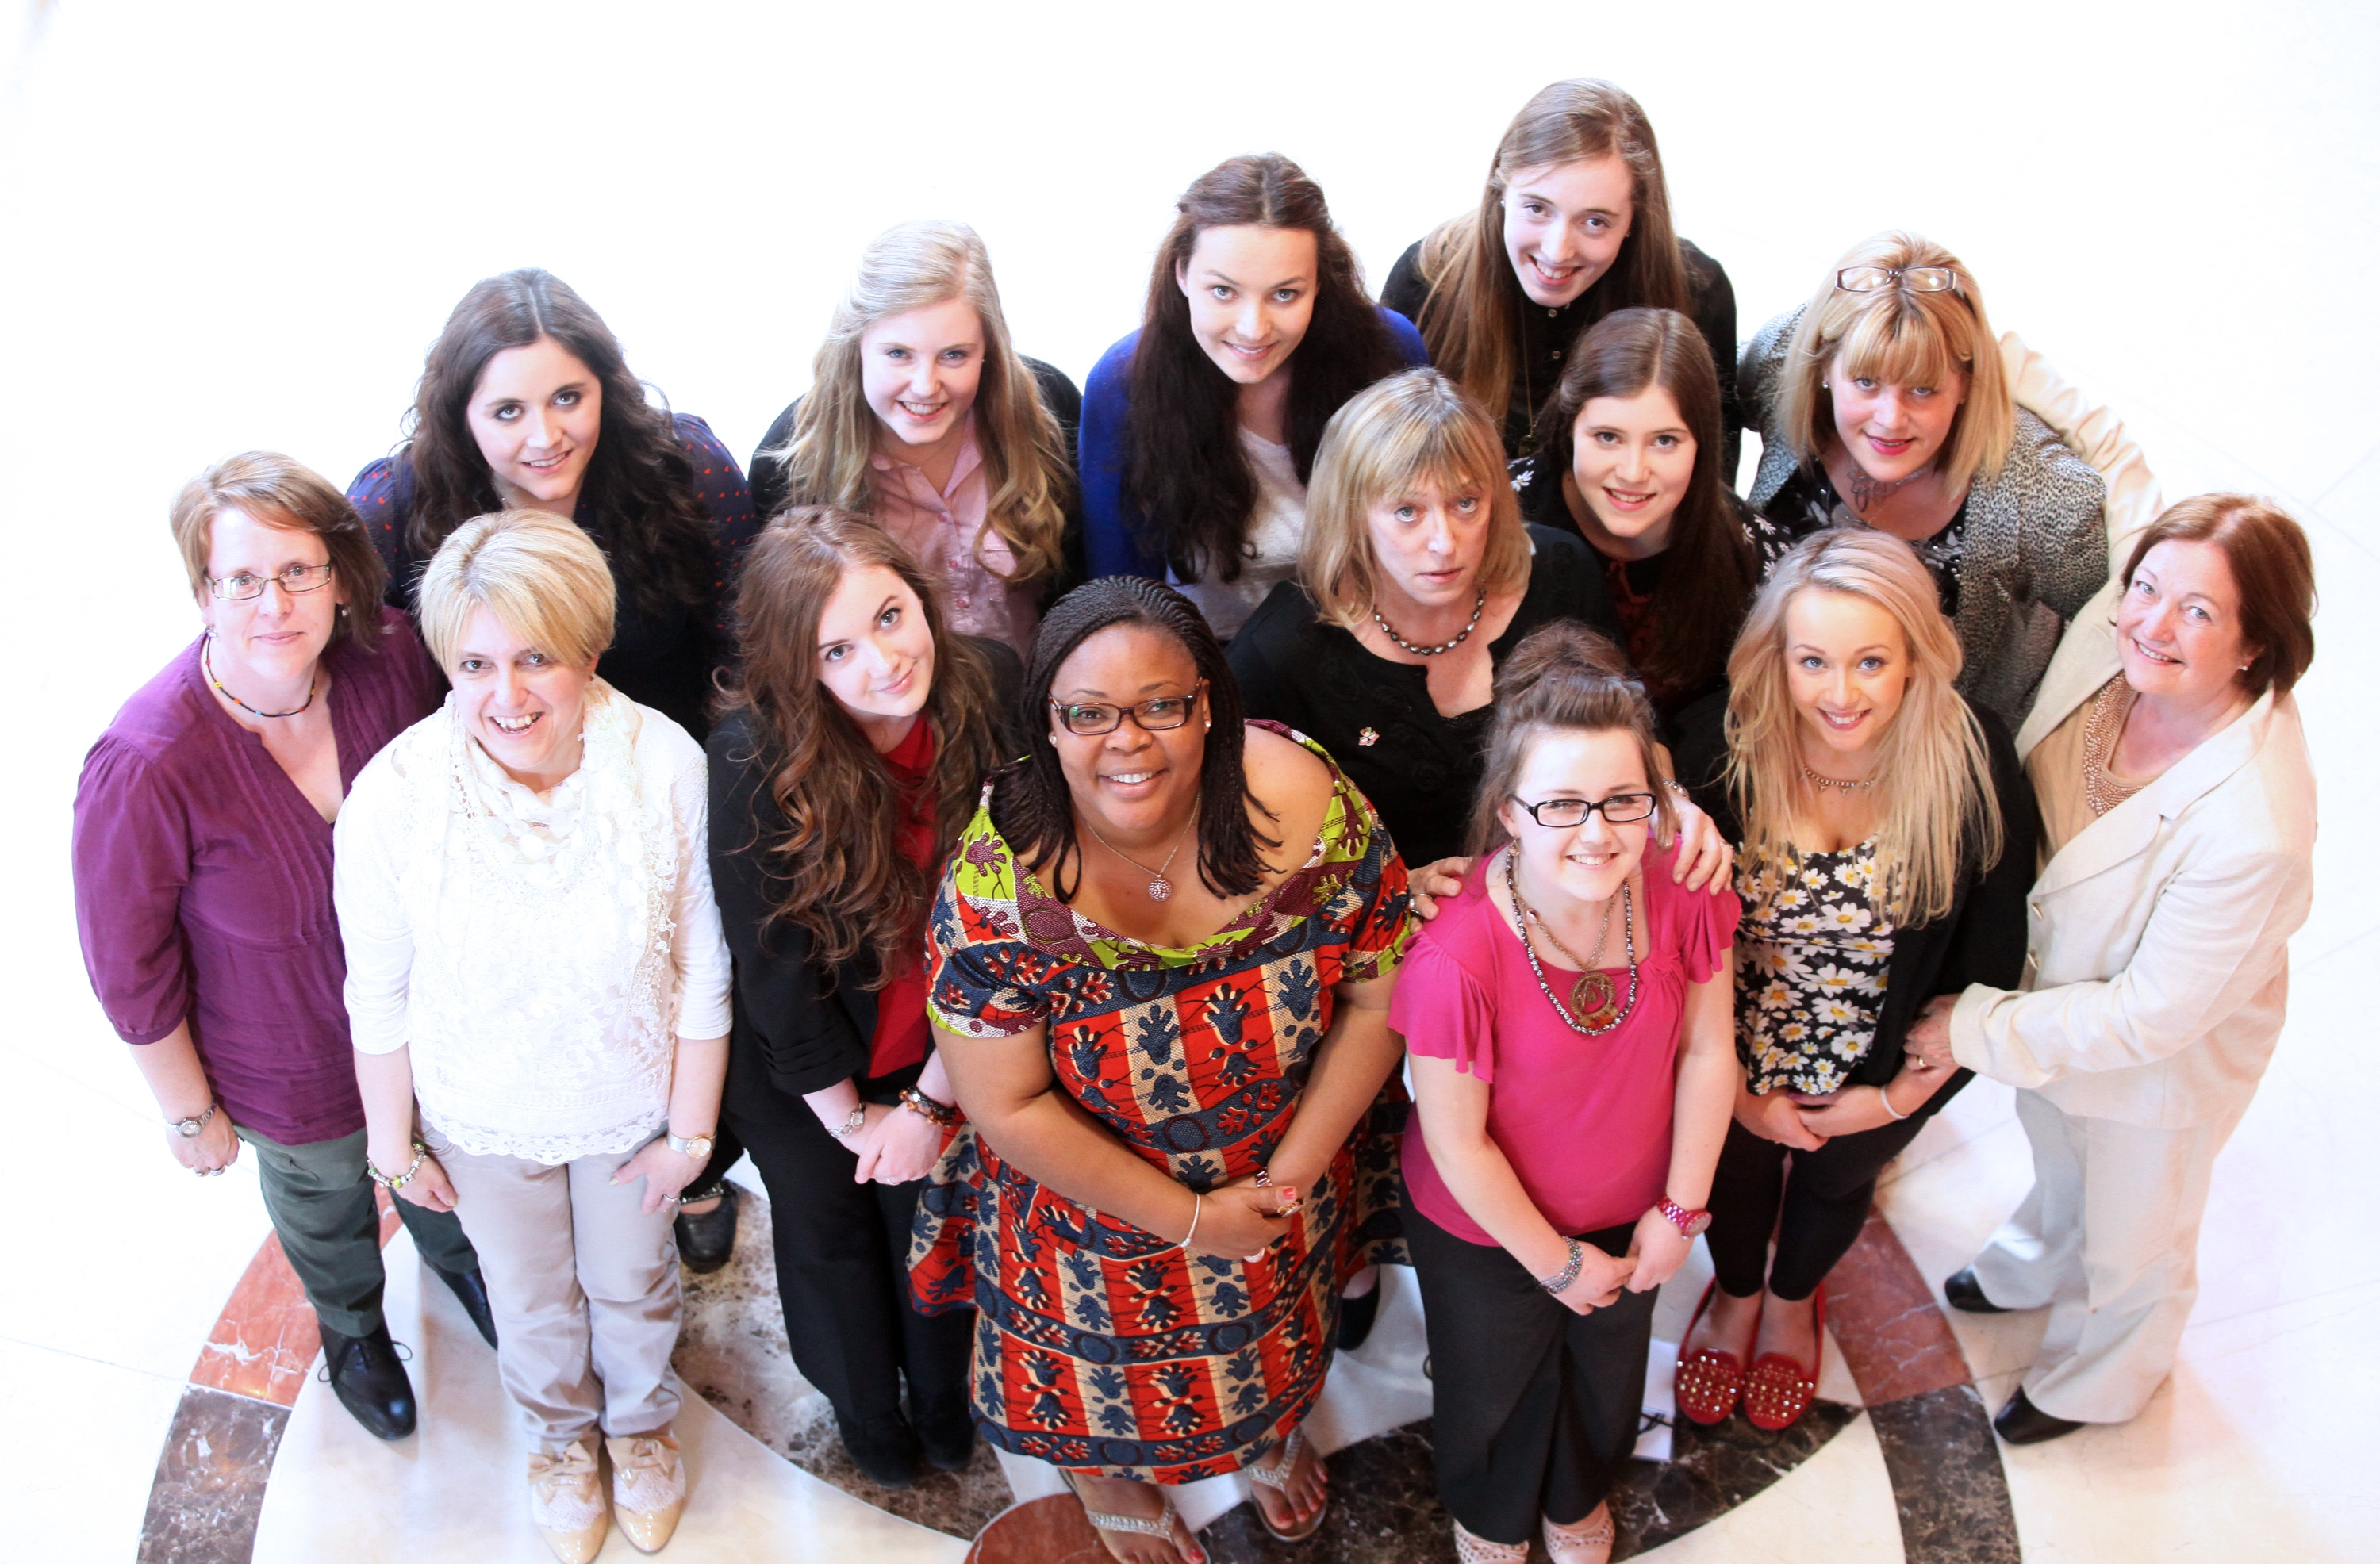 Young women follow in the footsteps of the Nobel laureates